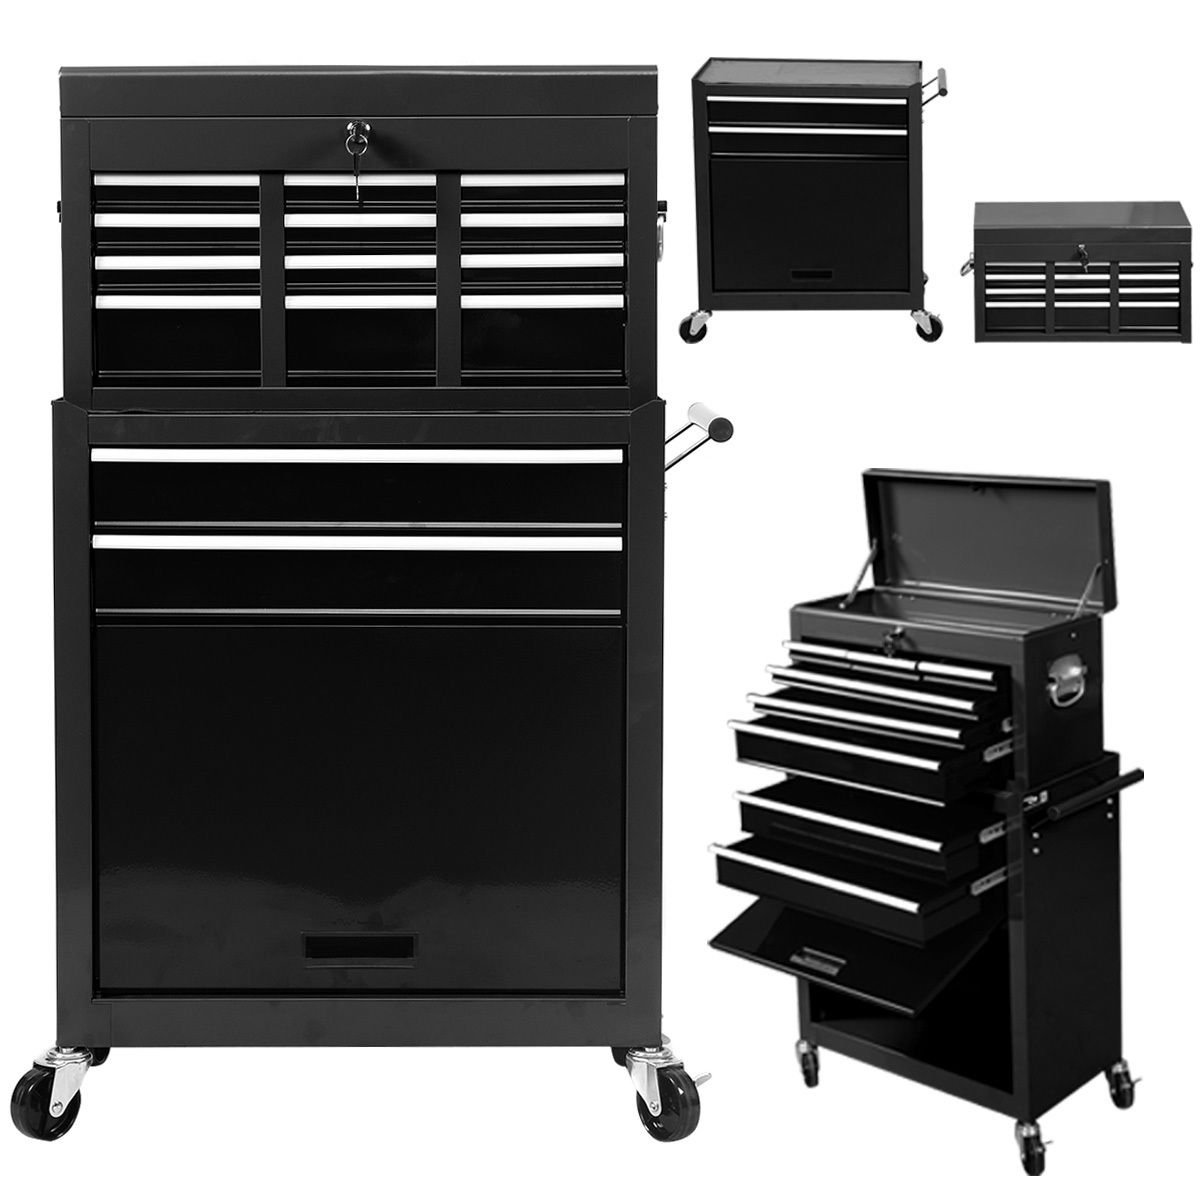 Portable Top Chest Rolling Tool Storage Cabinet Organizer 6 Sliding Drawers Bonus free ebook By Allgoodsdelight365